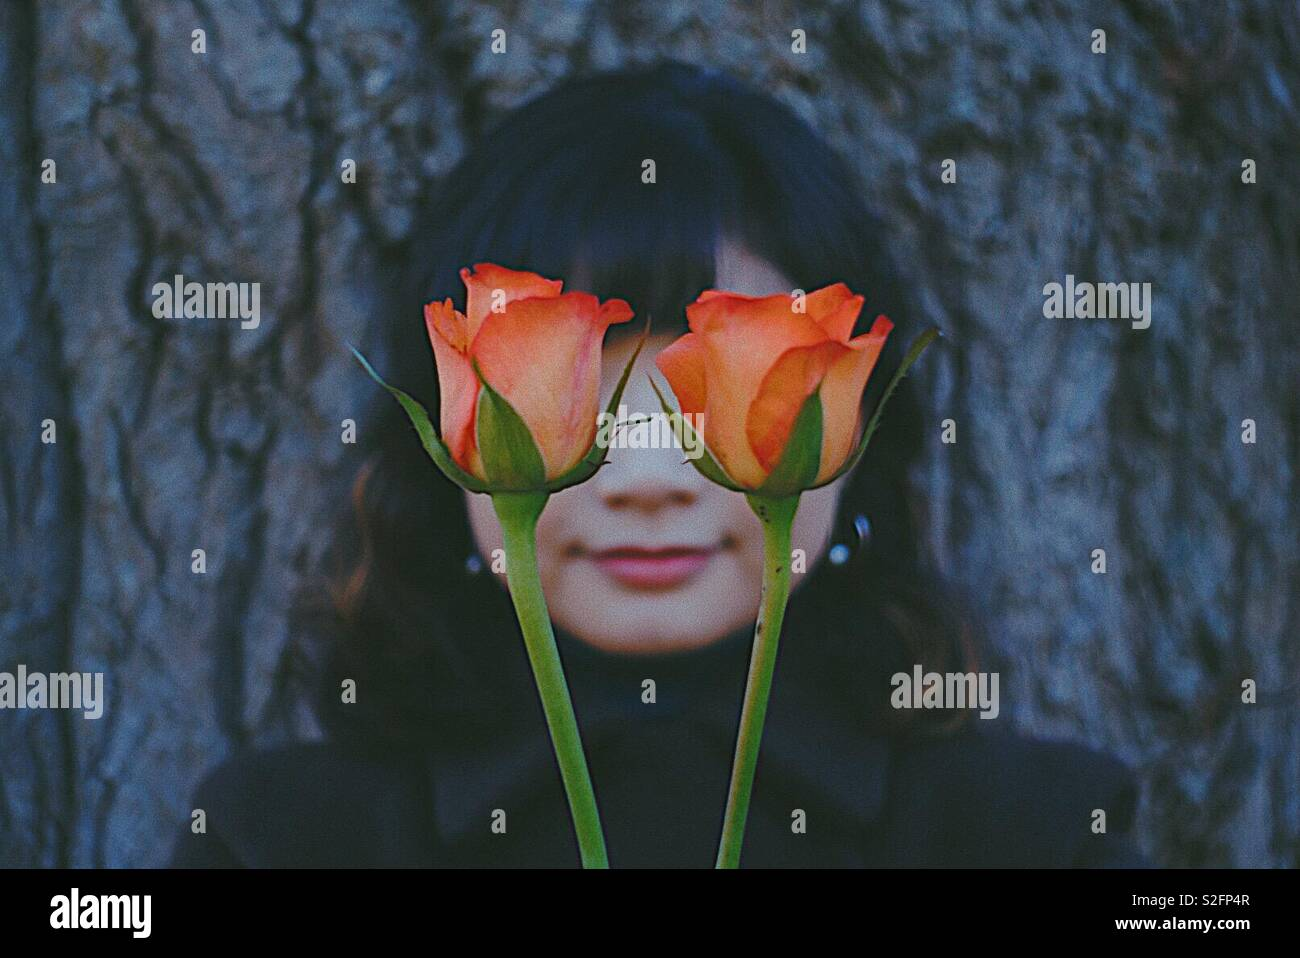 A girl with roses. - Stock Image